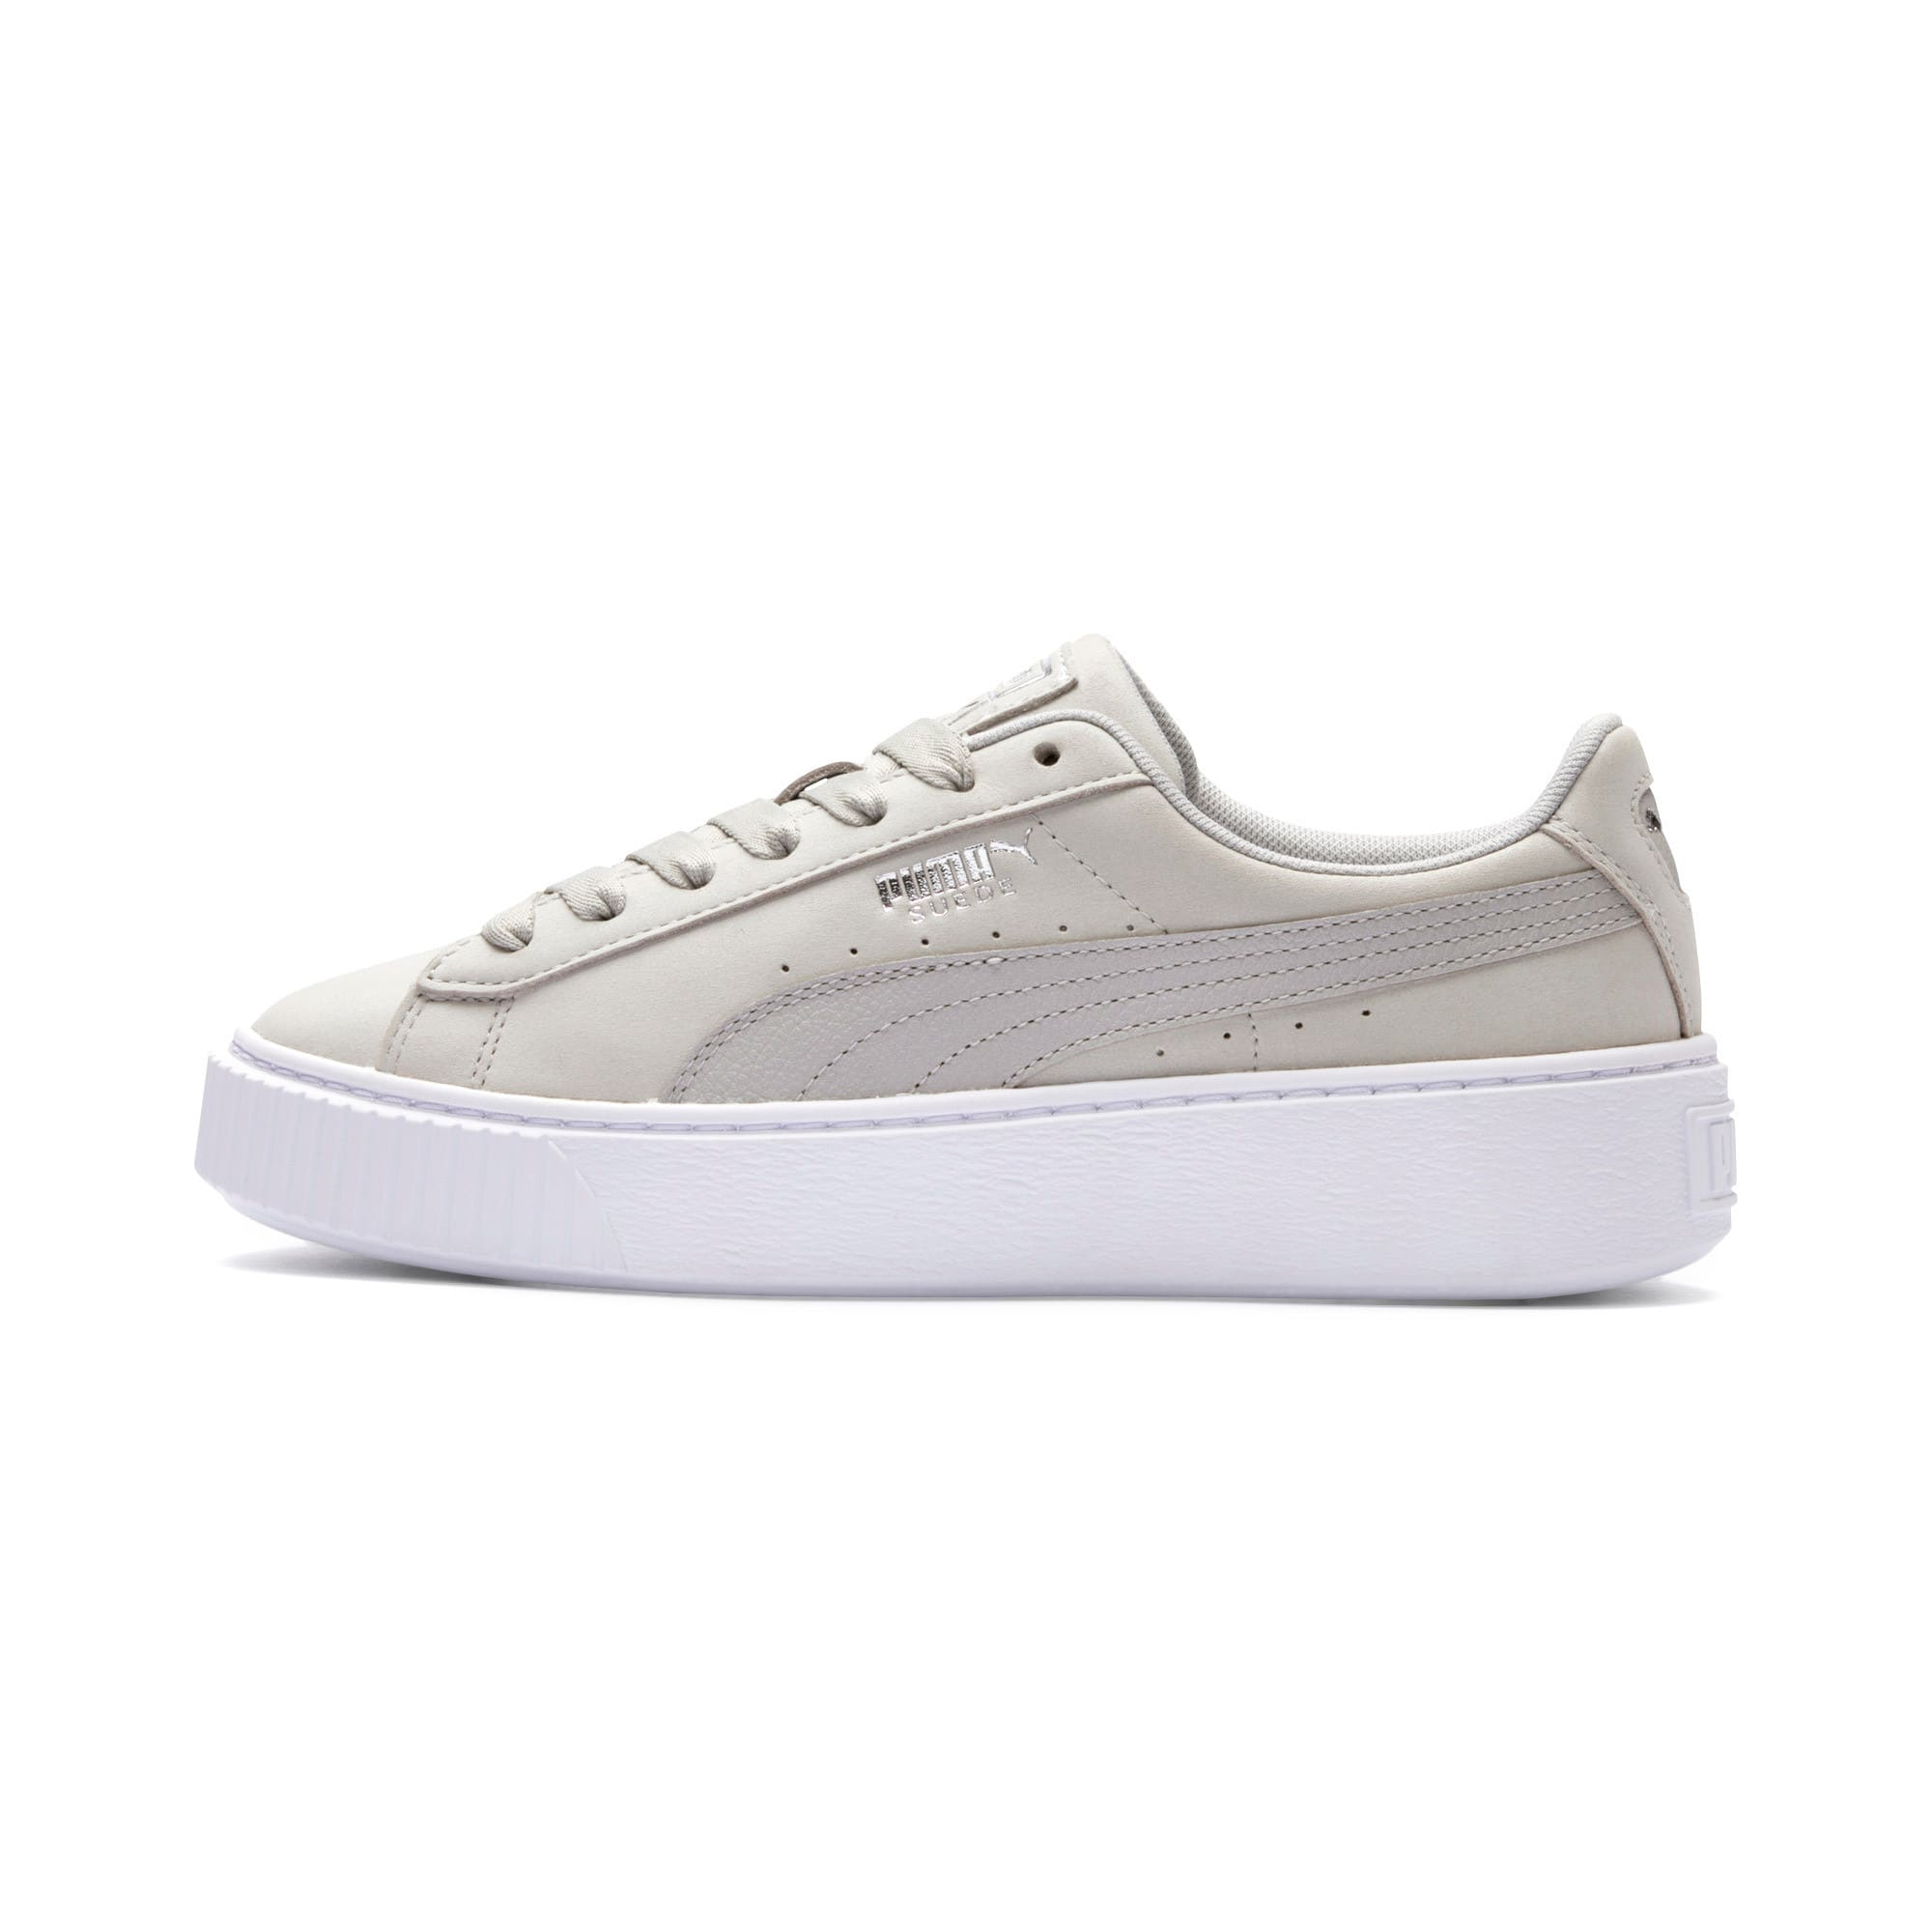 Thumbnail 1 of Suede Platform Shimmer Women's Sneakers, Gray Violet-Puma White, medium